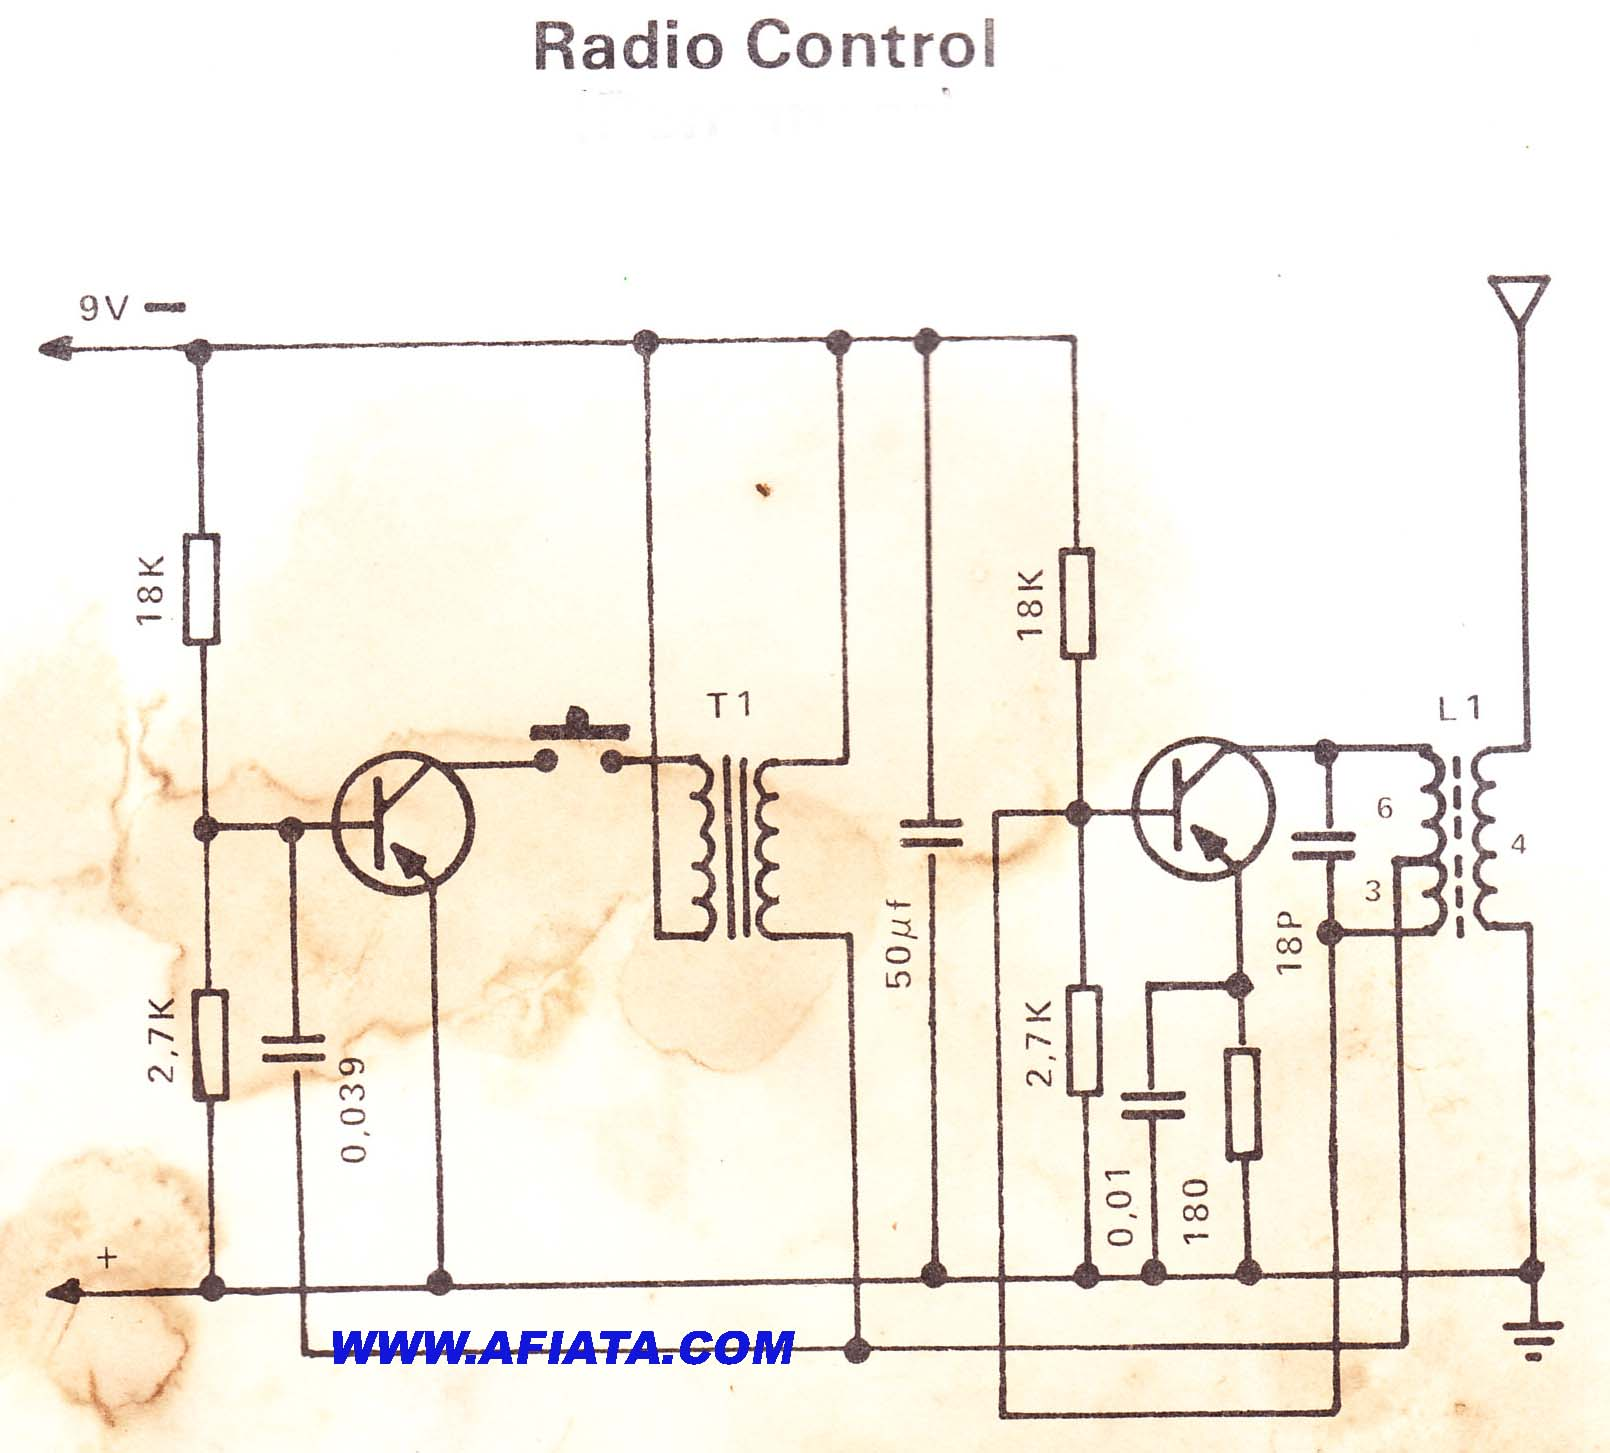 Schematics in addition Nixie Tube Clock Schematic together with Mwtransmitter2t in addition Metal Detector Circuit further Se3 e. on tube radio circuits